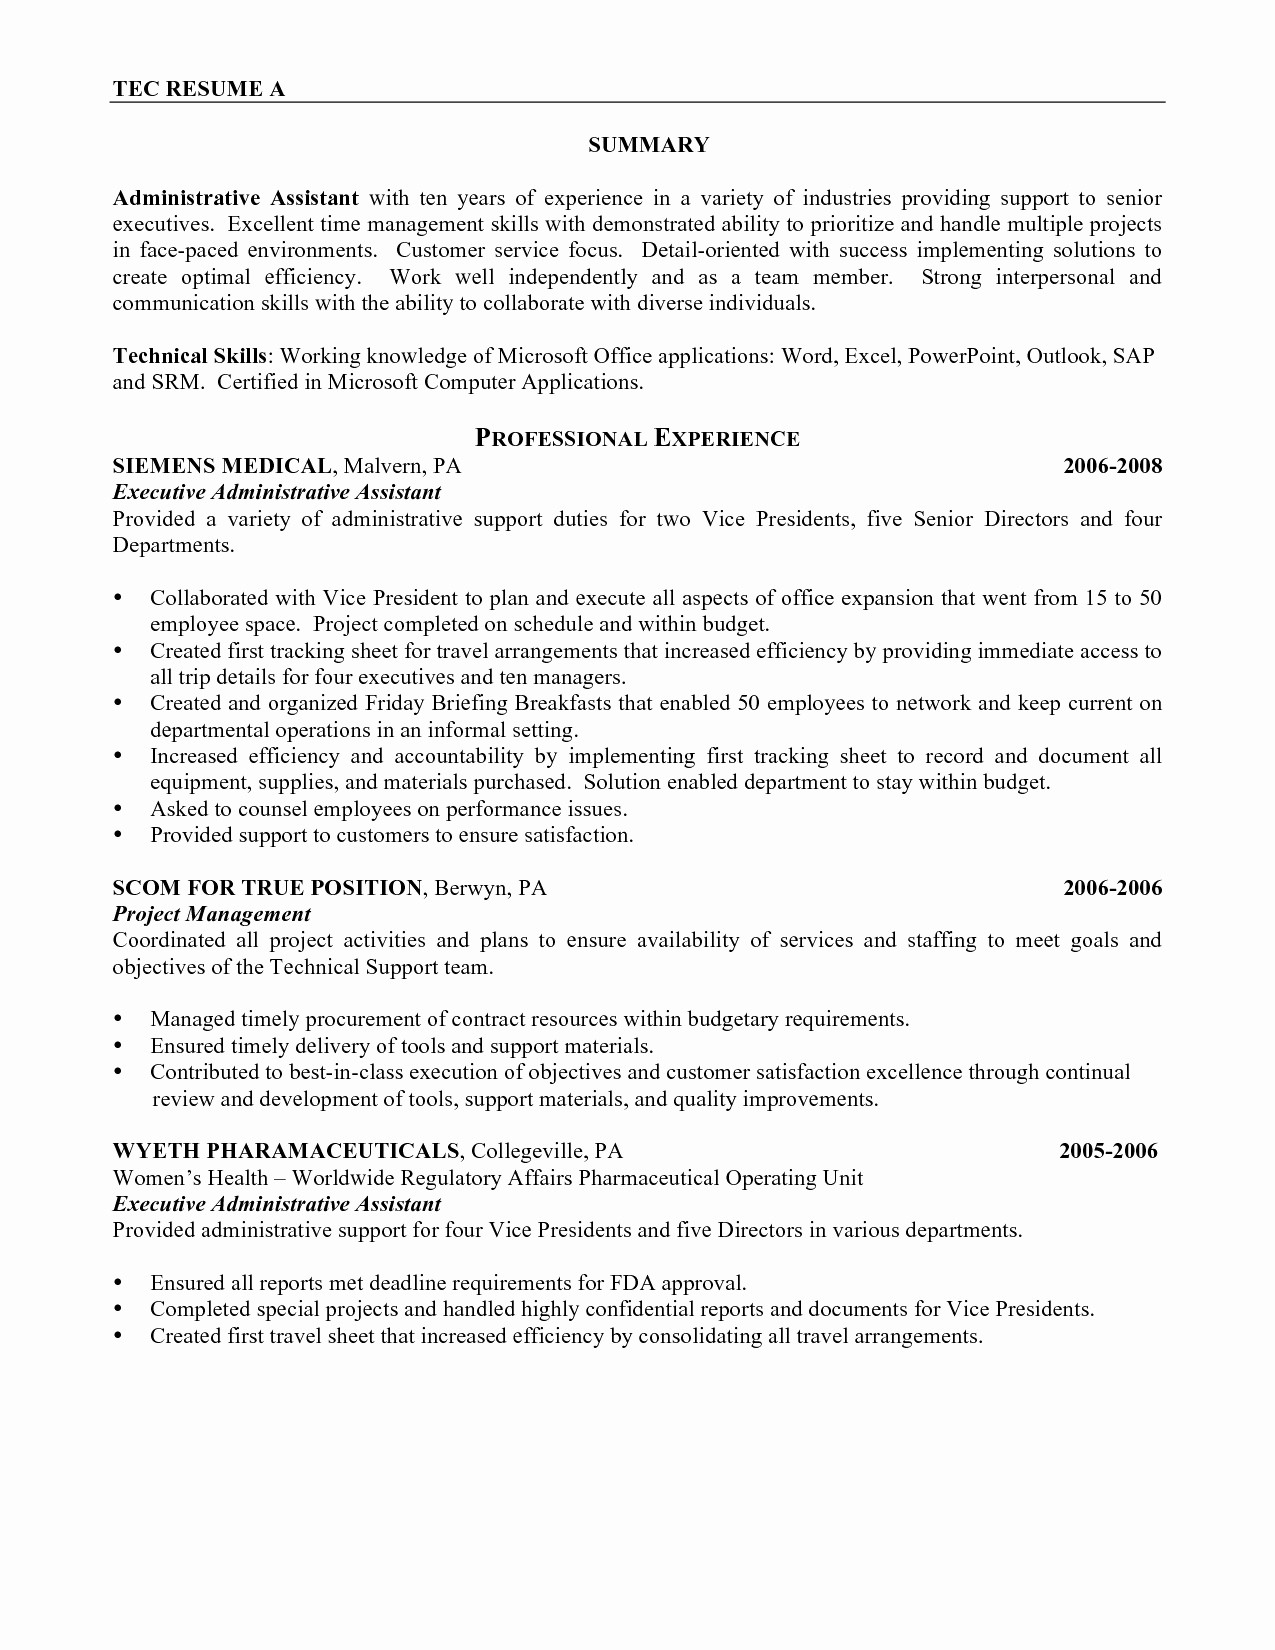 Customer Service Resume - Customer Service Skills Resume New Customer Service Skills for